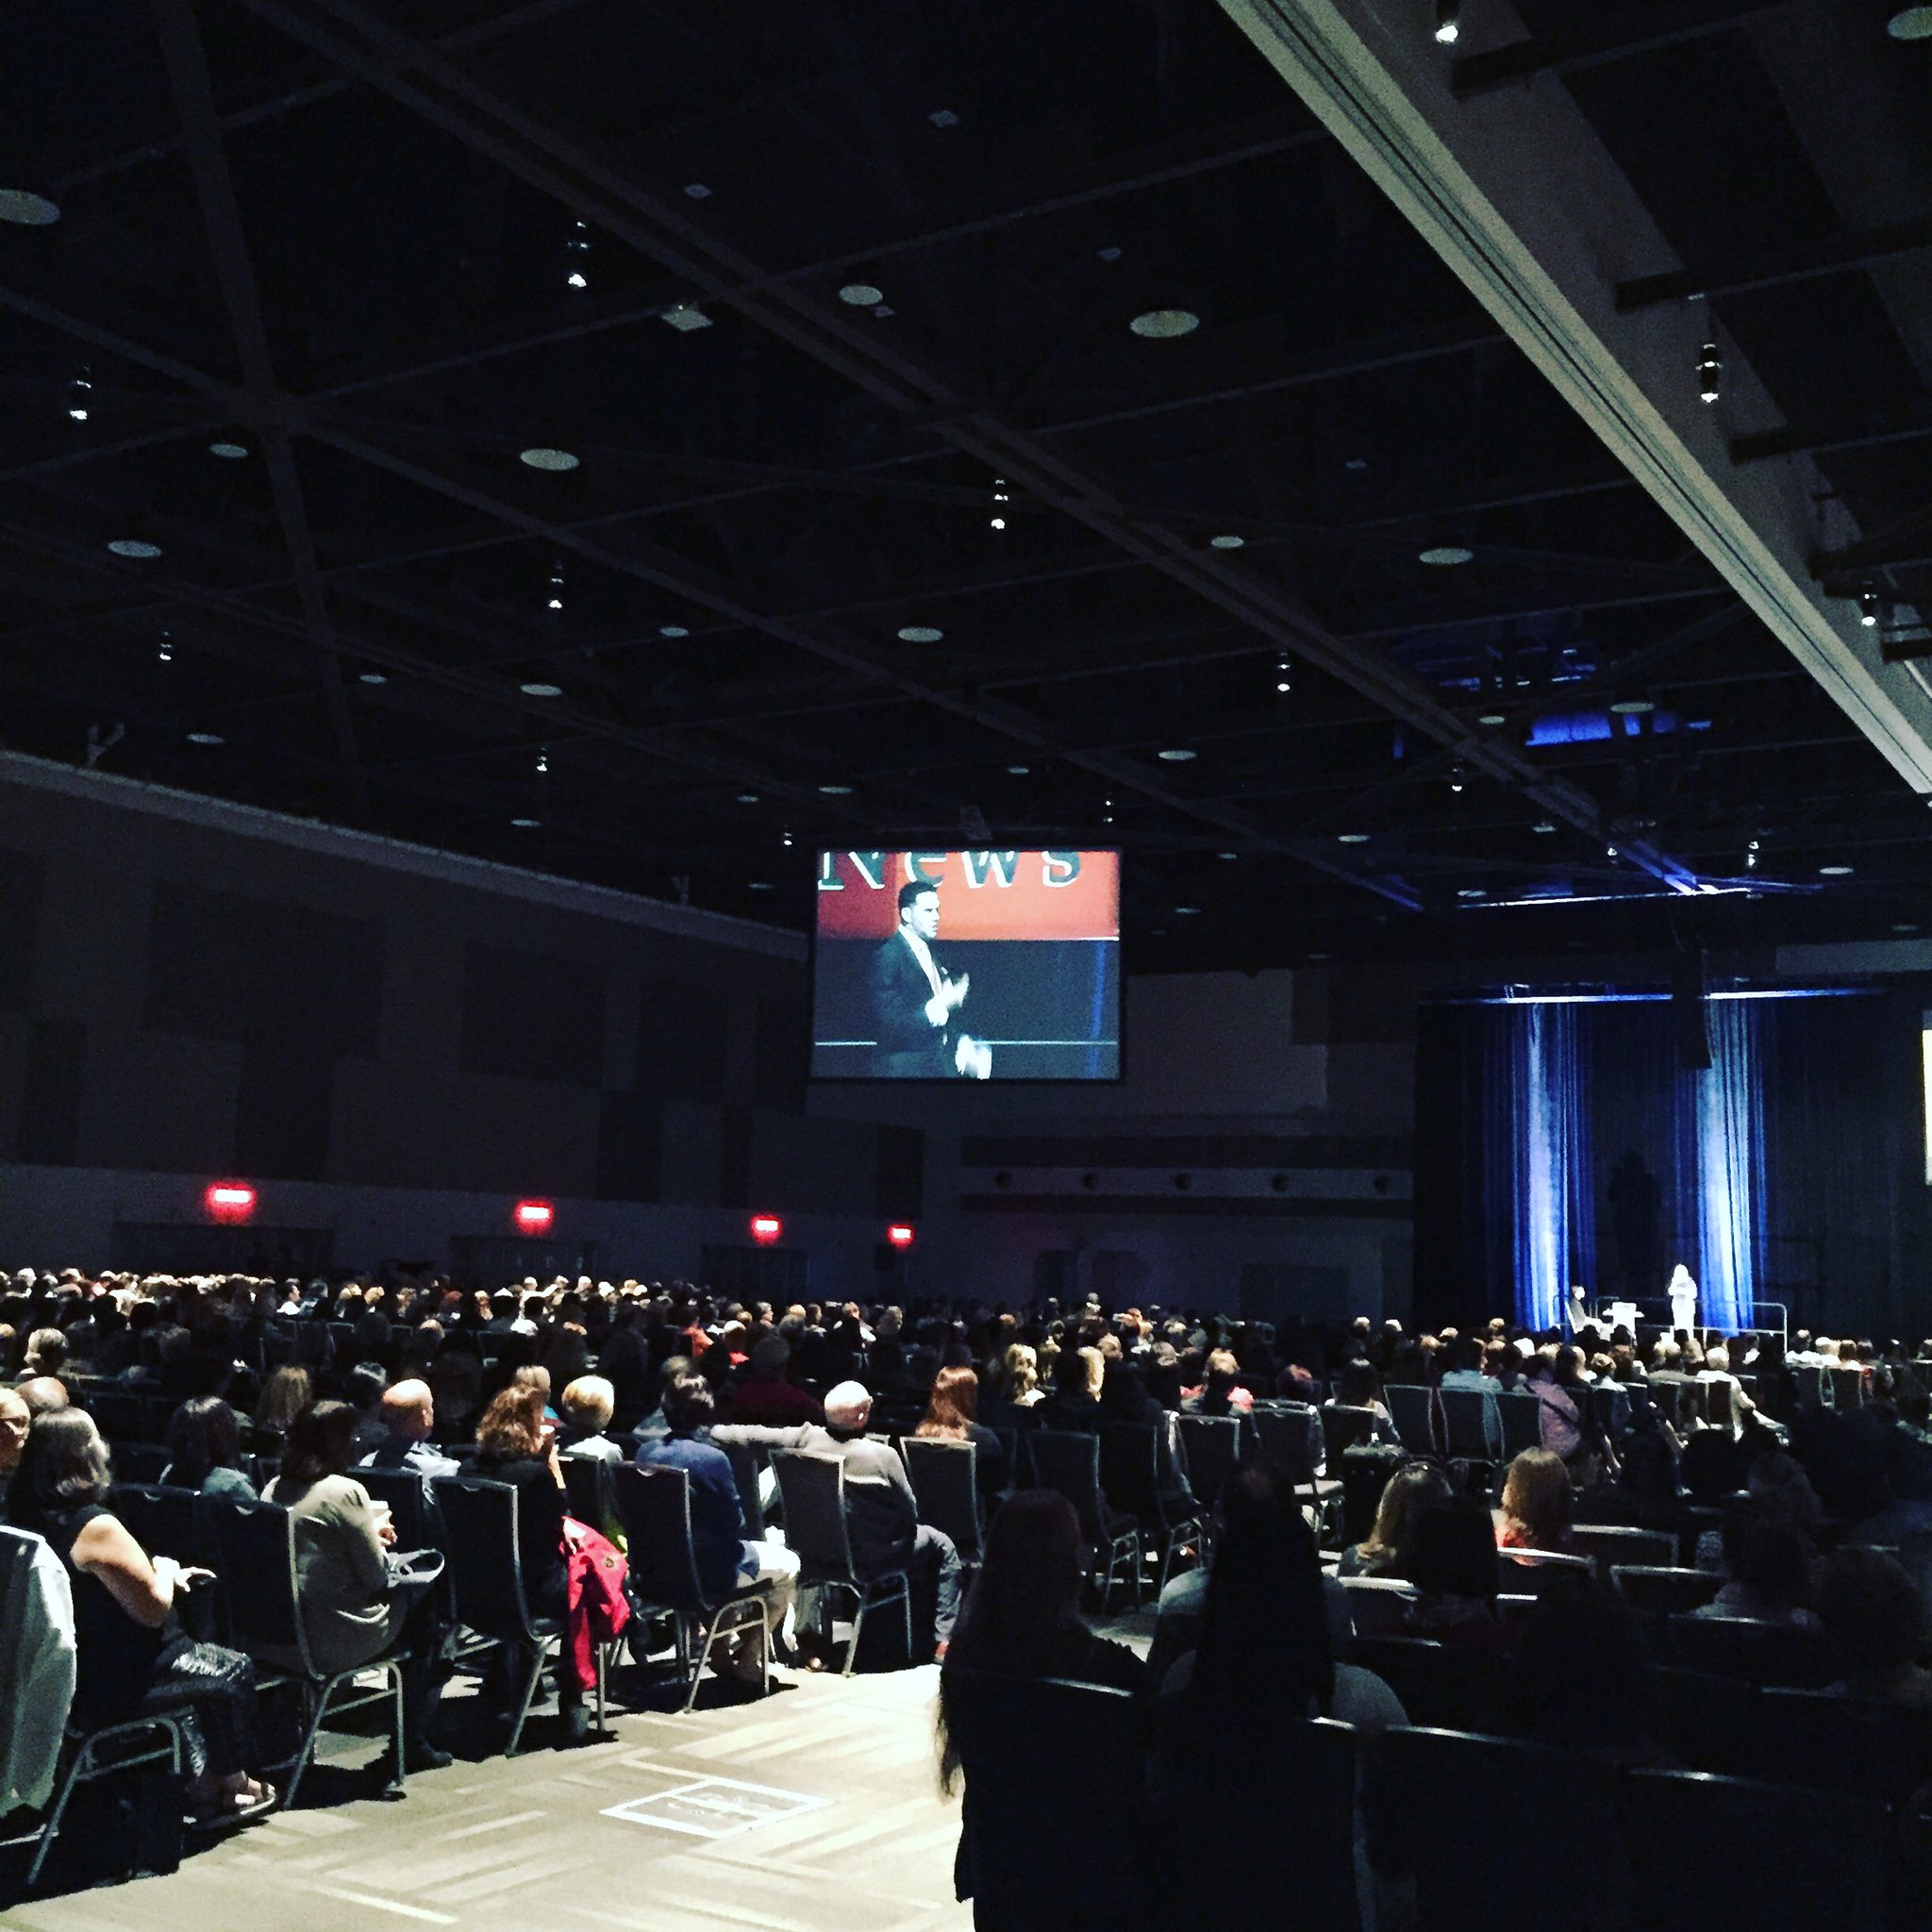 Such a blessing to have @iStevePemberton inspire 4000+ #ocsb employees for #OCSBCCDAY https://t.co/dyfDA5gHiw